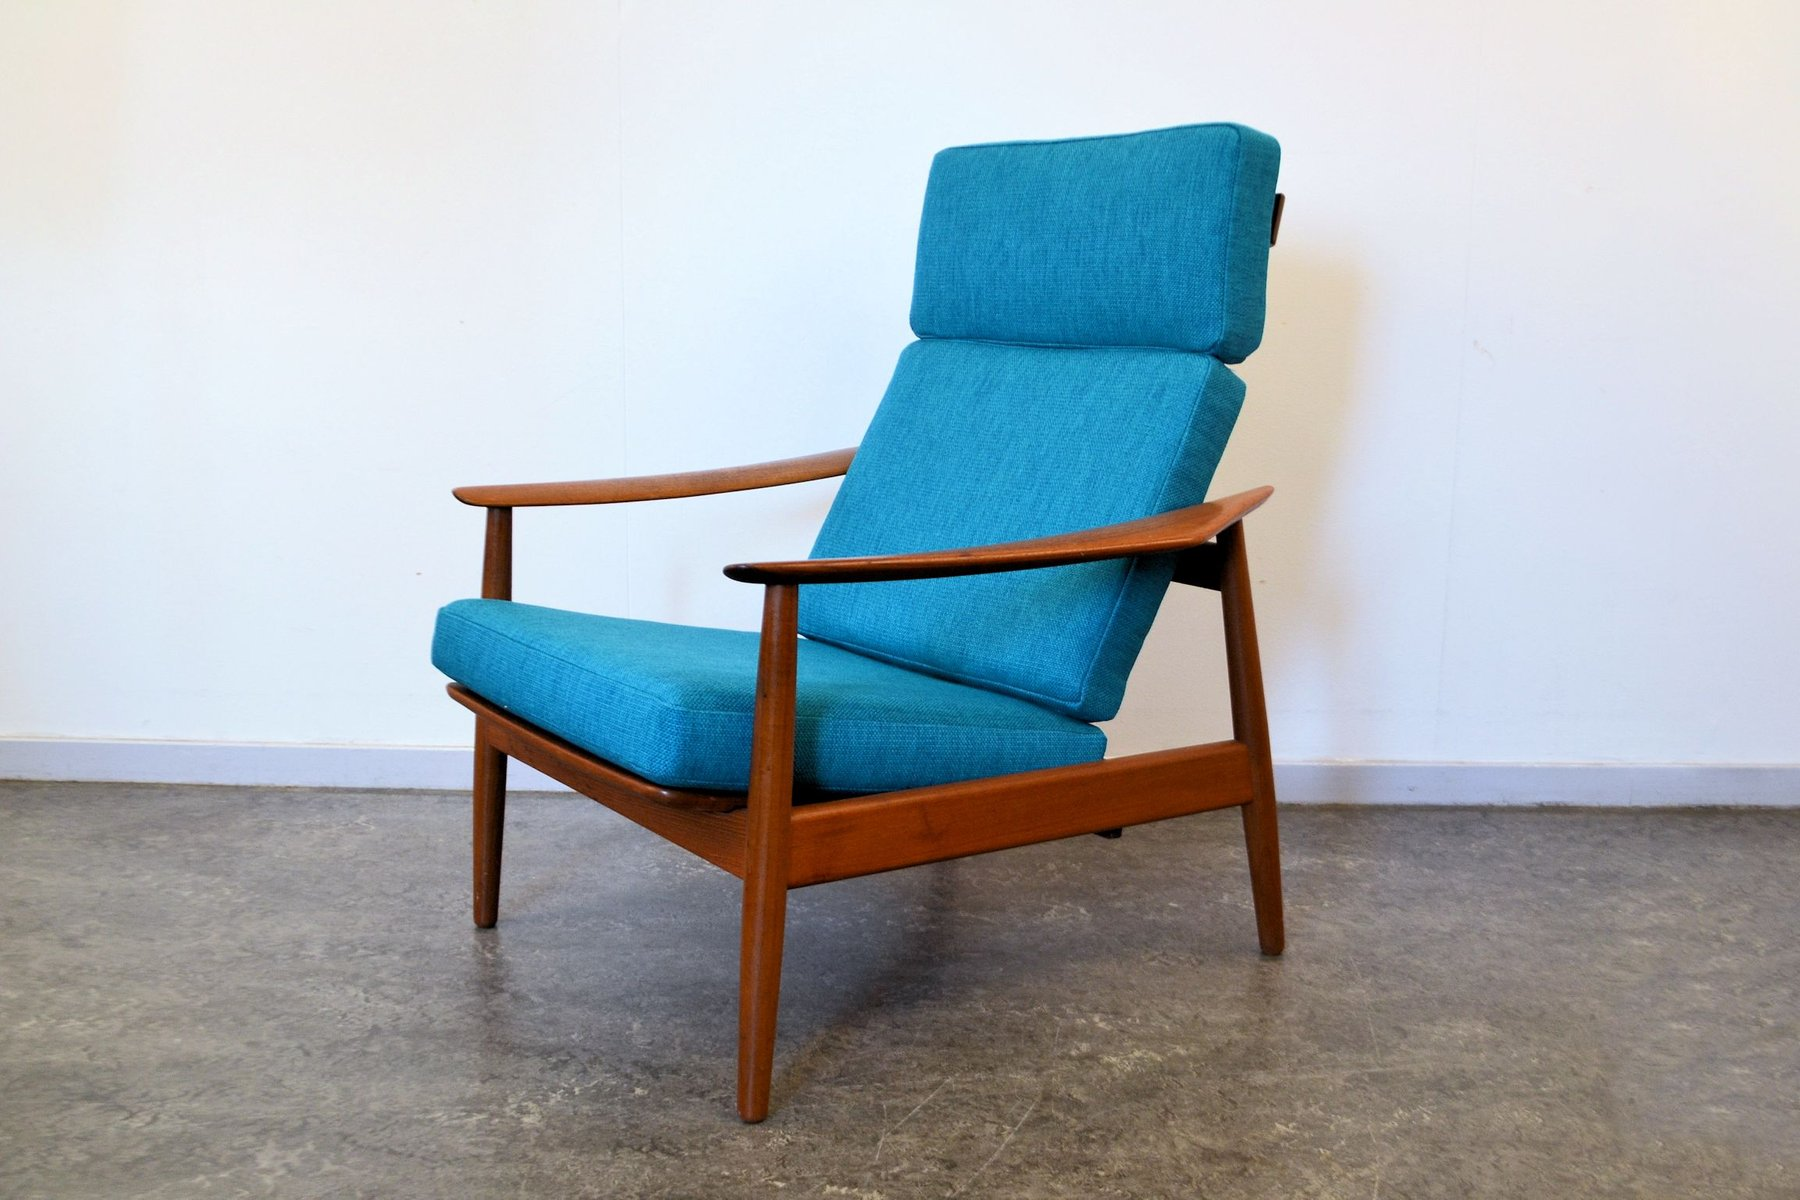 FD164 Teak Lounge Chair And Ottoman Set By Arne Vodder For France Son F